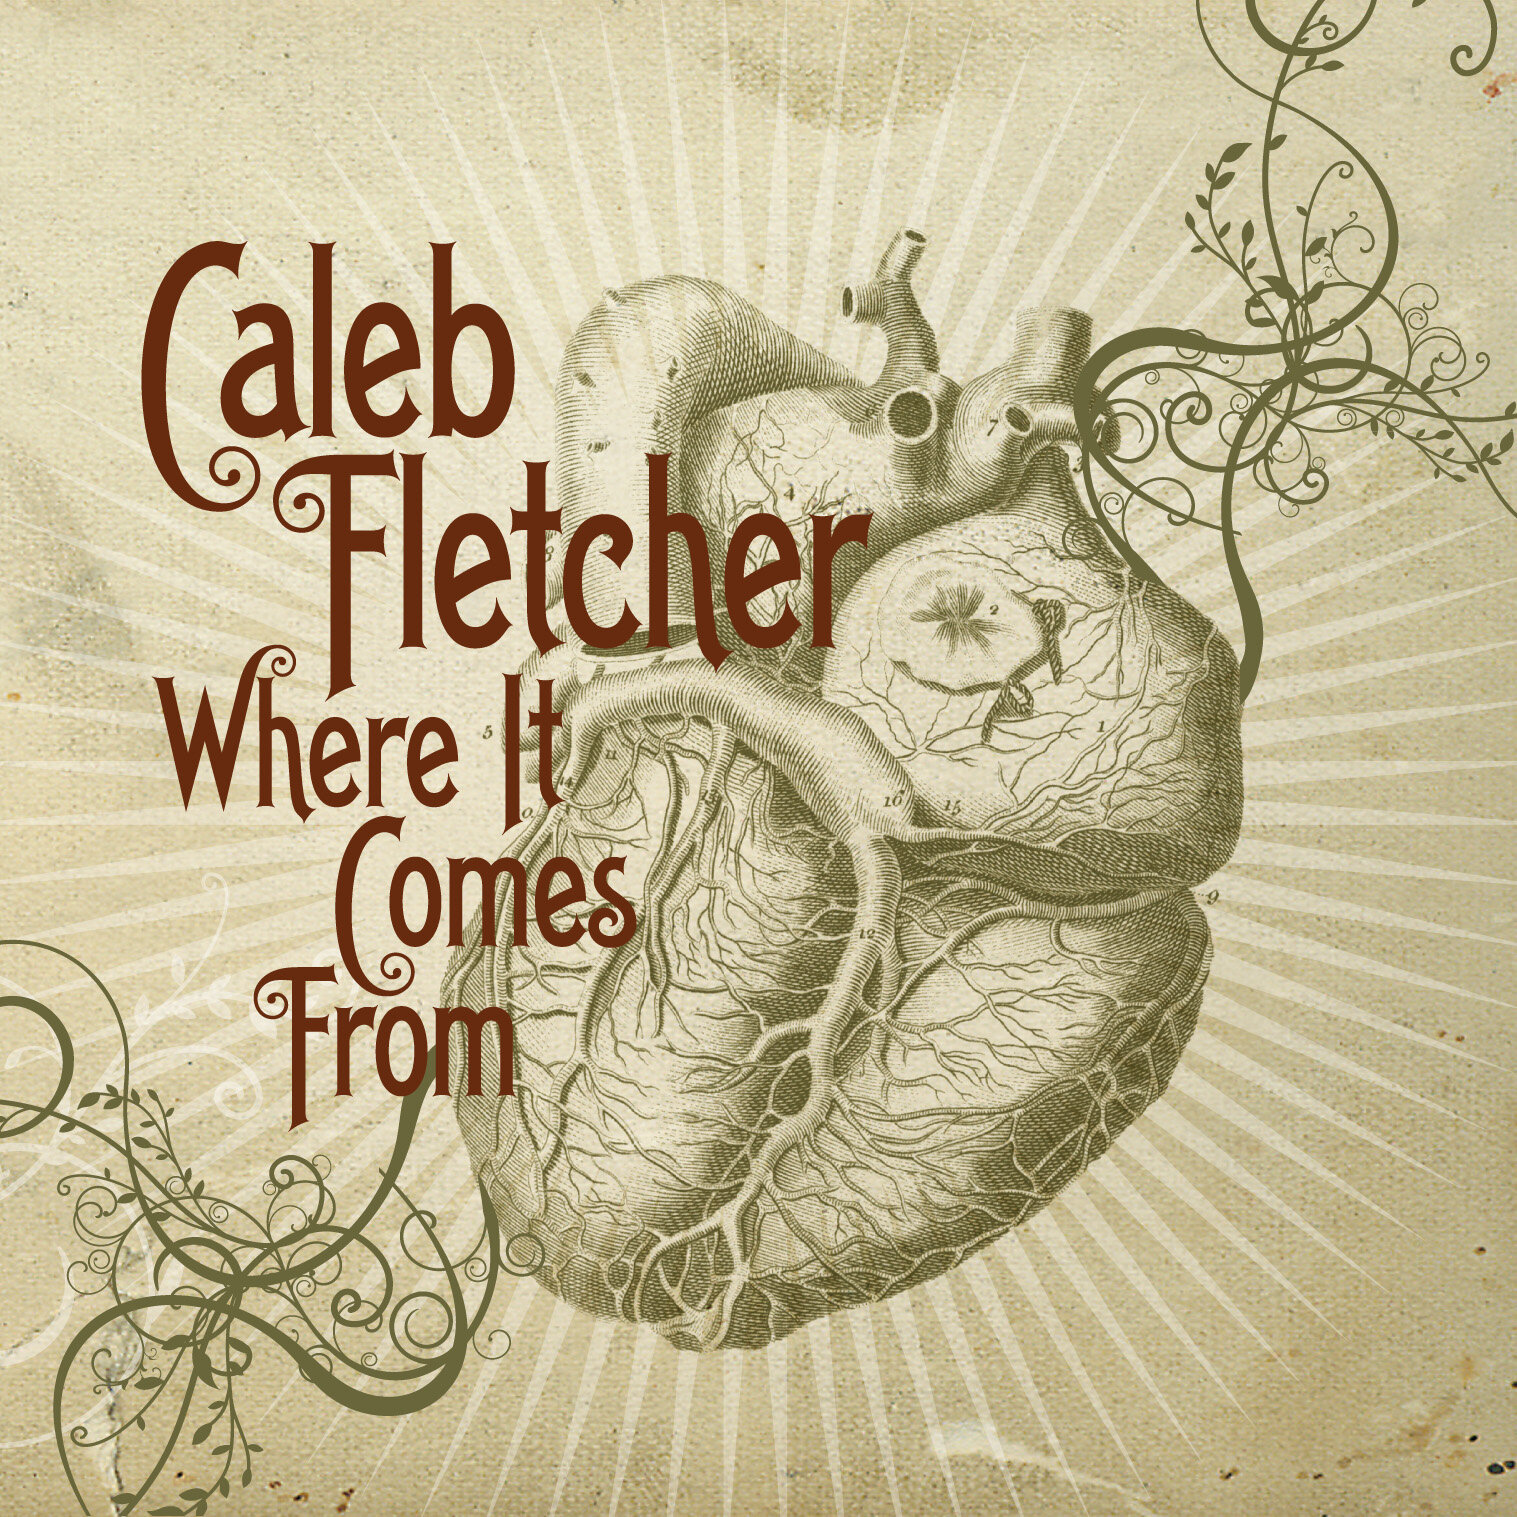 Released October 2, 2012 Produced by Noel Golden, Palmetto Roots Recorded/Mixed by Noel Golden (Willie Nelson, Edwin McCain, Matchbox Twenty) at  Whitestone Studios, Greenville, SC Mastered by Alex Lowe at Red Tuxedo Mastering, Atlanta, GA All songs written by Caleb Fletcher (ASCAP)